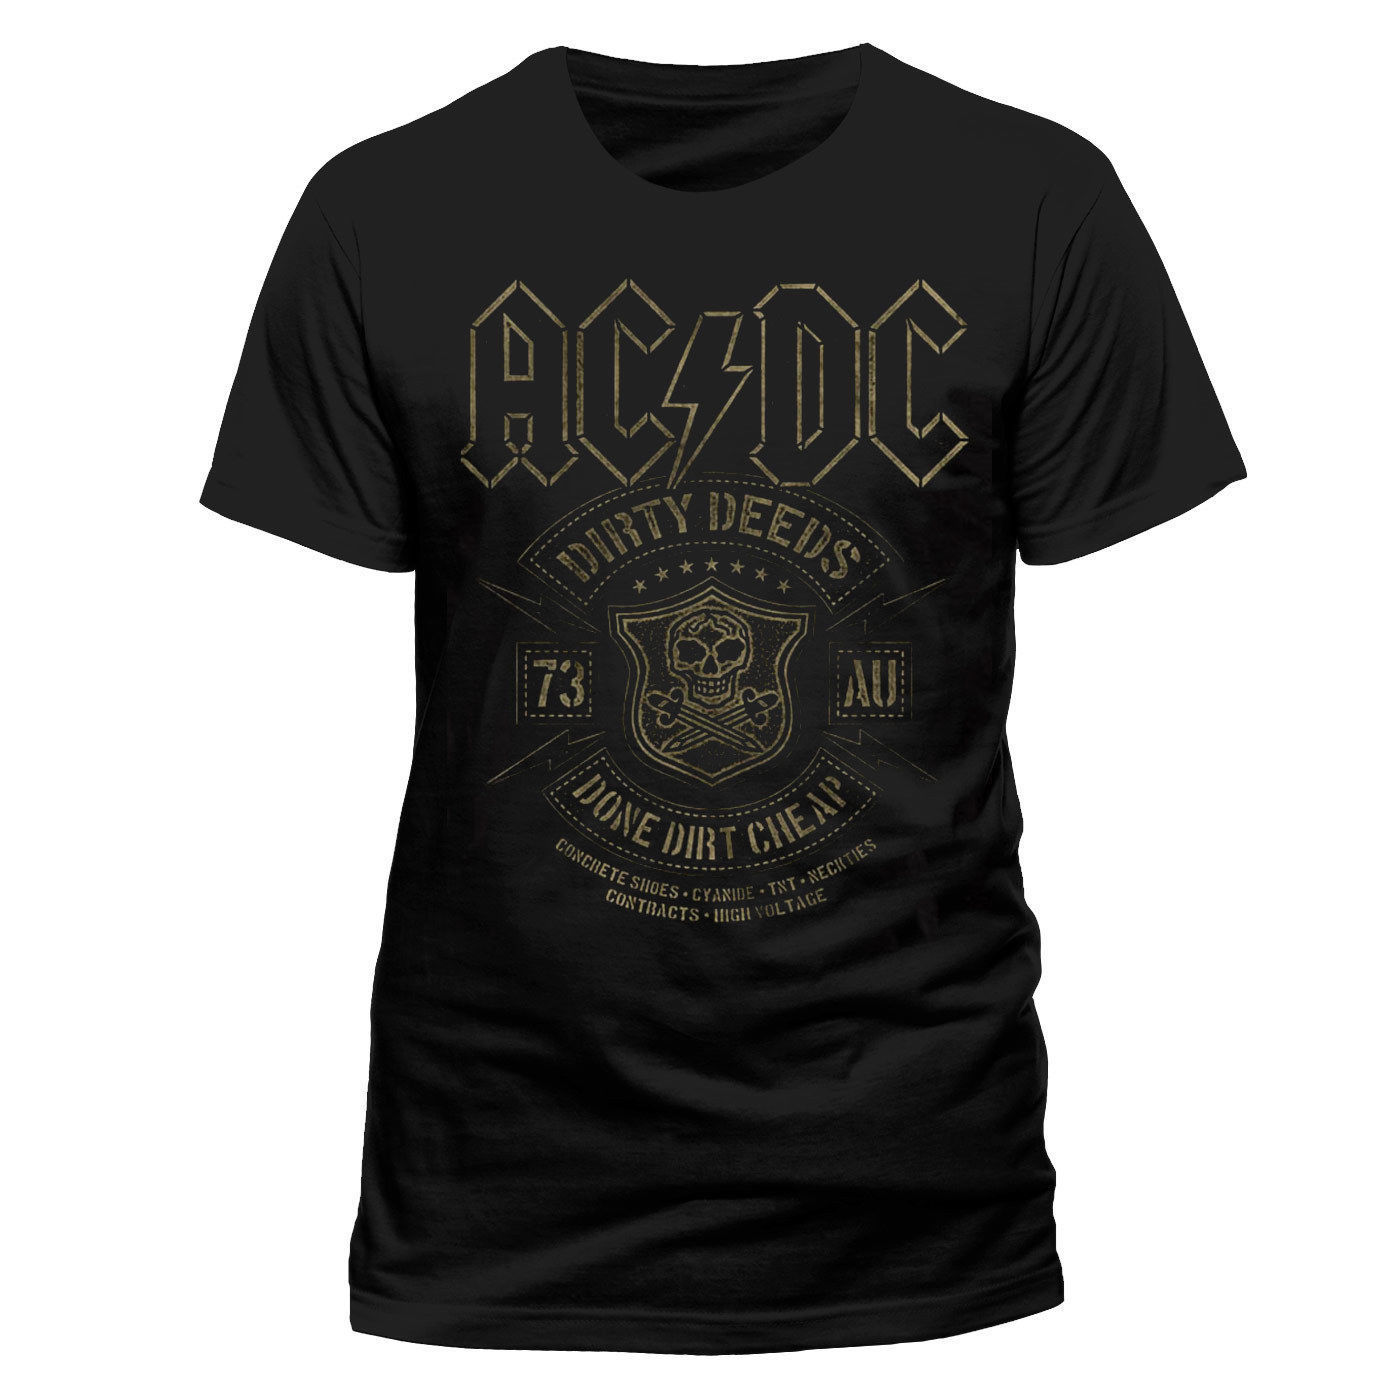 ACDC Licensed Dirty Deeds Done Cheap Rock Heavy Metal Tee T-Shirt Men Cartoon Print Short Sleeve T Shirt Free Shipping ...